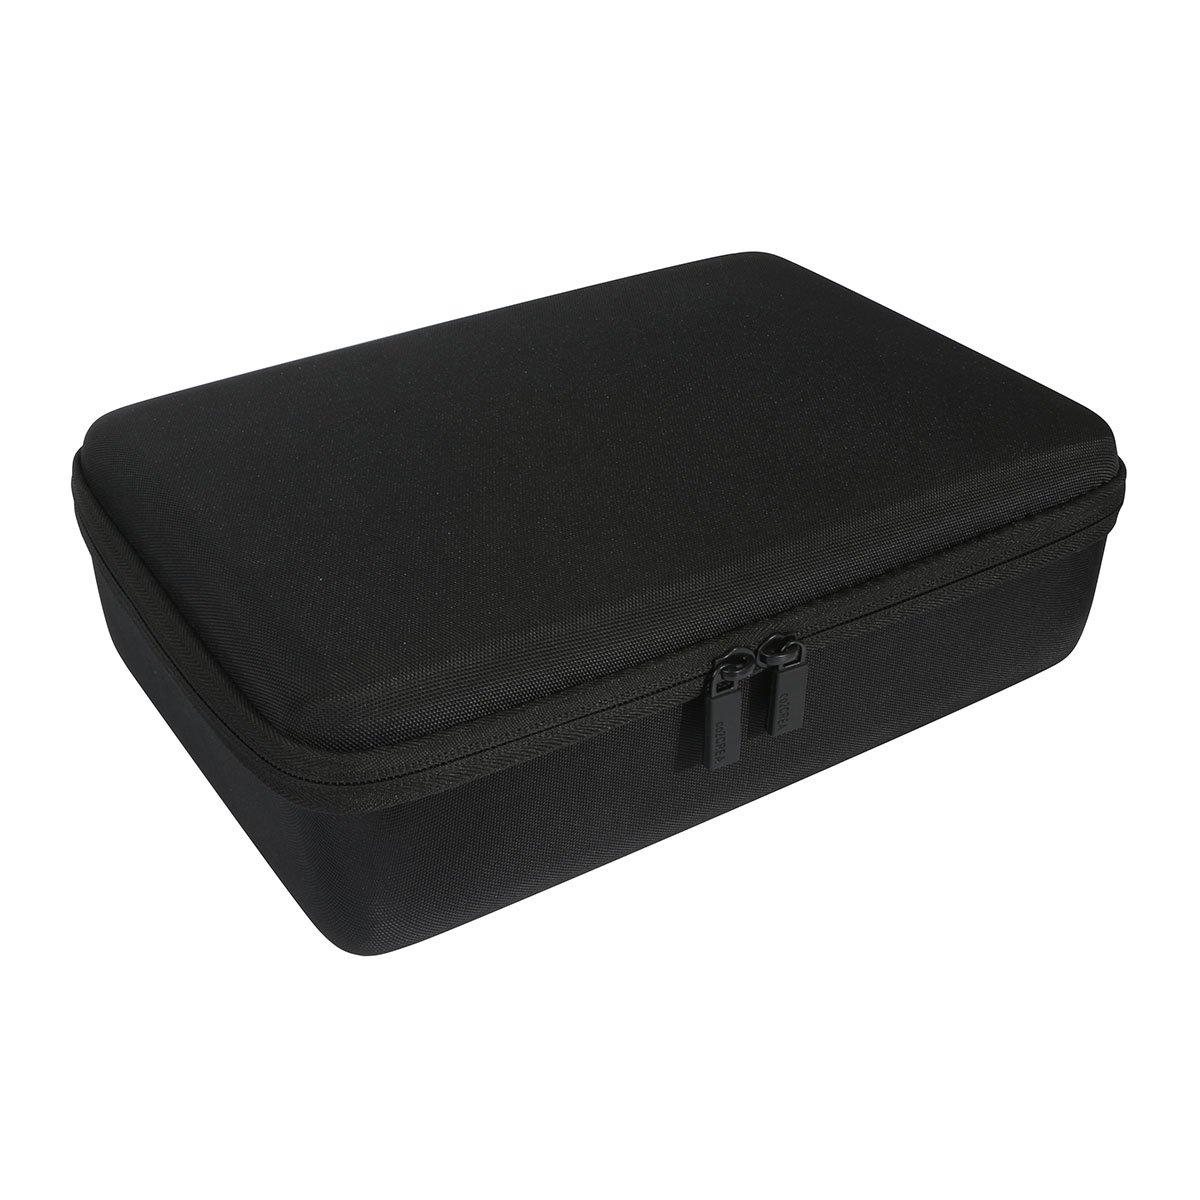 Hard Travel Case for Canon Selphy CP1200/CP1300 Wireless Color Photo Printer by co2CREA